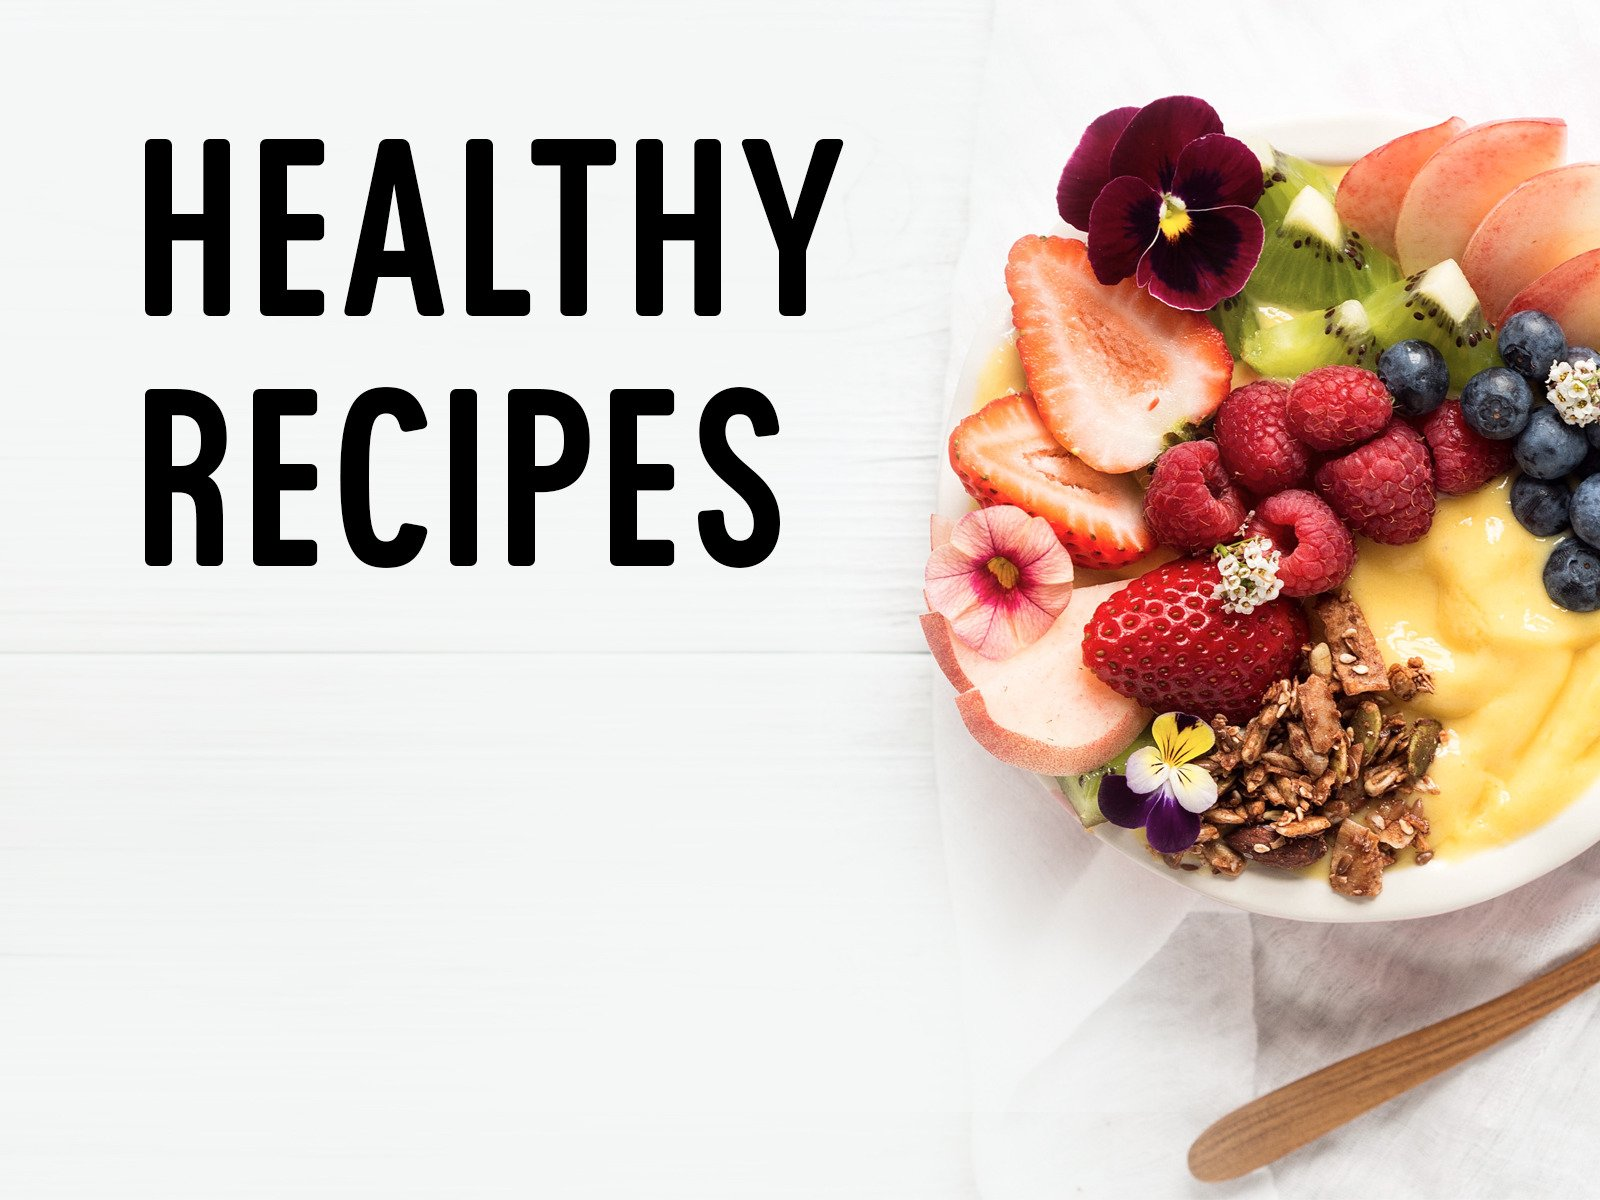 Healthy Recipes - Season 1